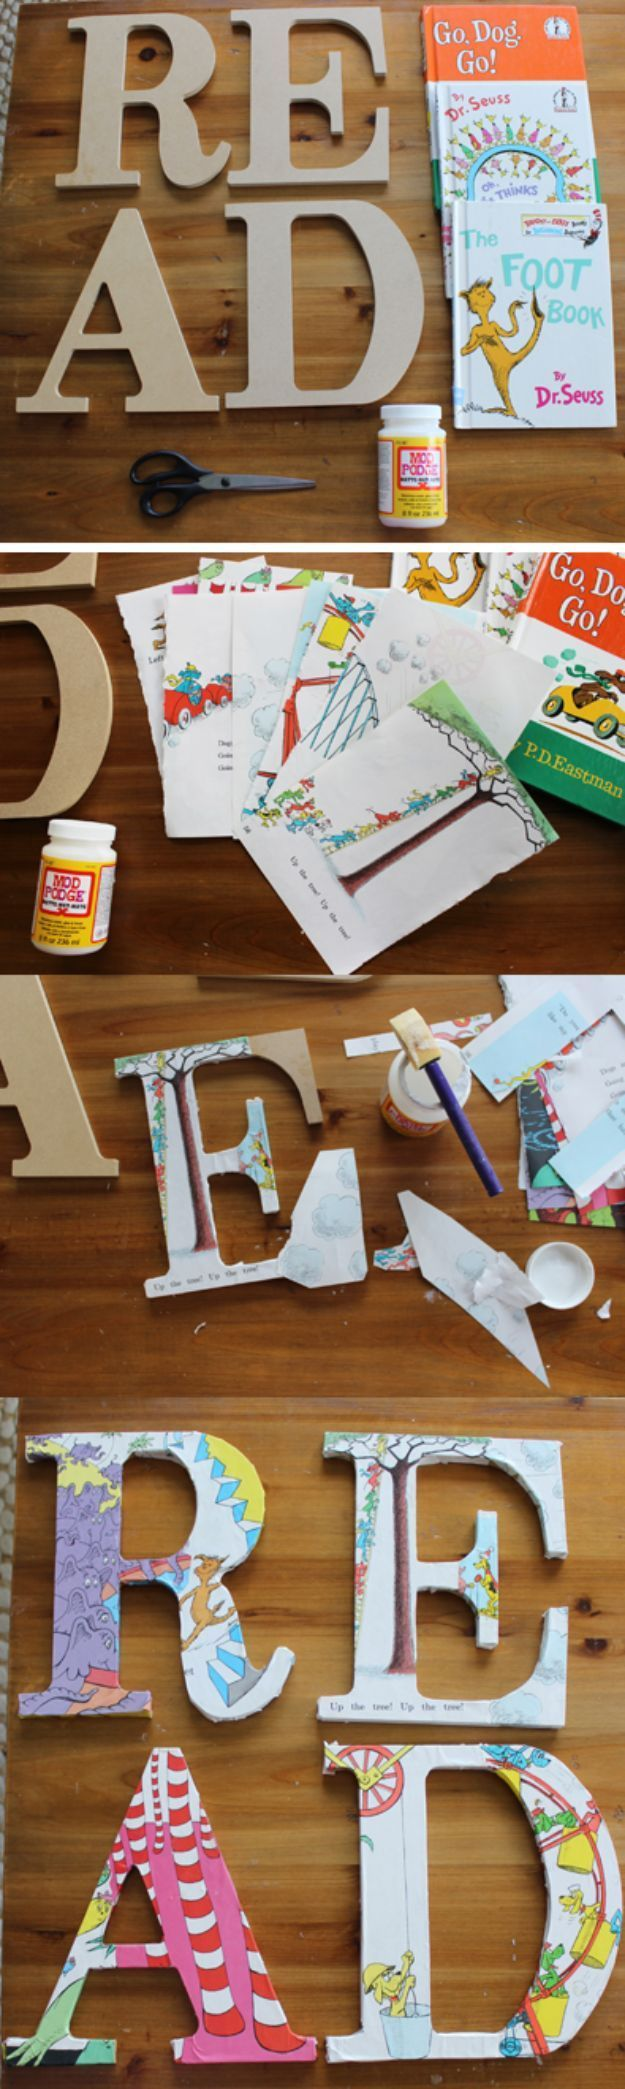 17 best ideas about wooden words on pinterest family art for Living room 7 letters